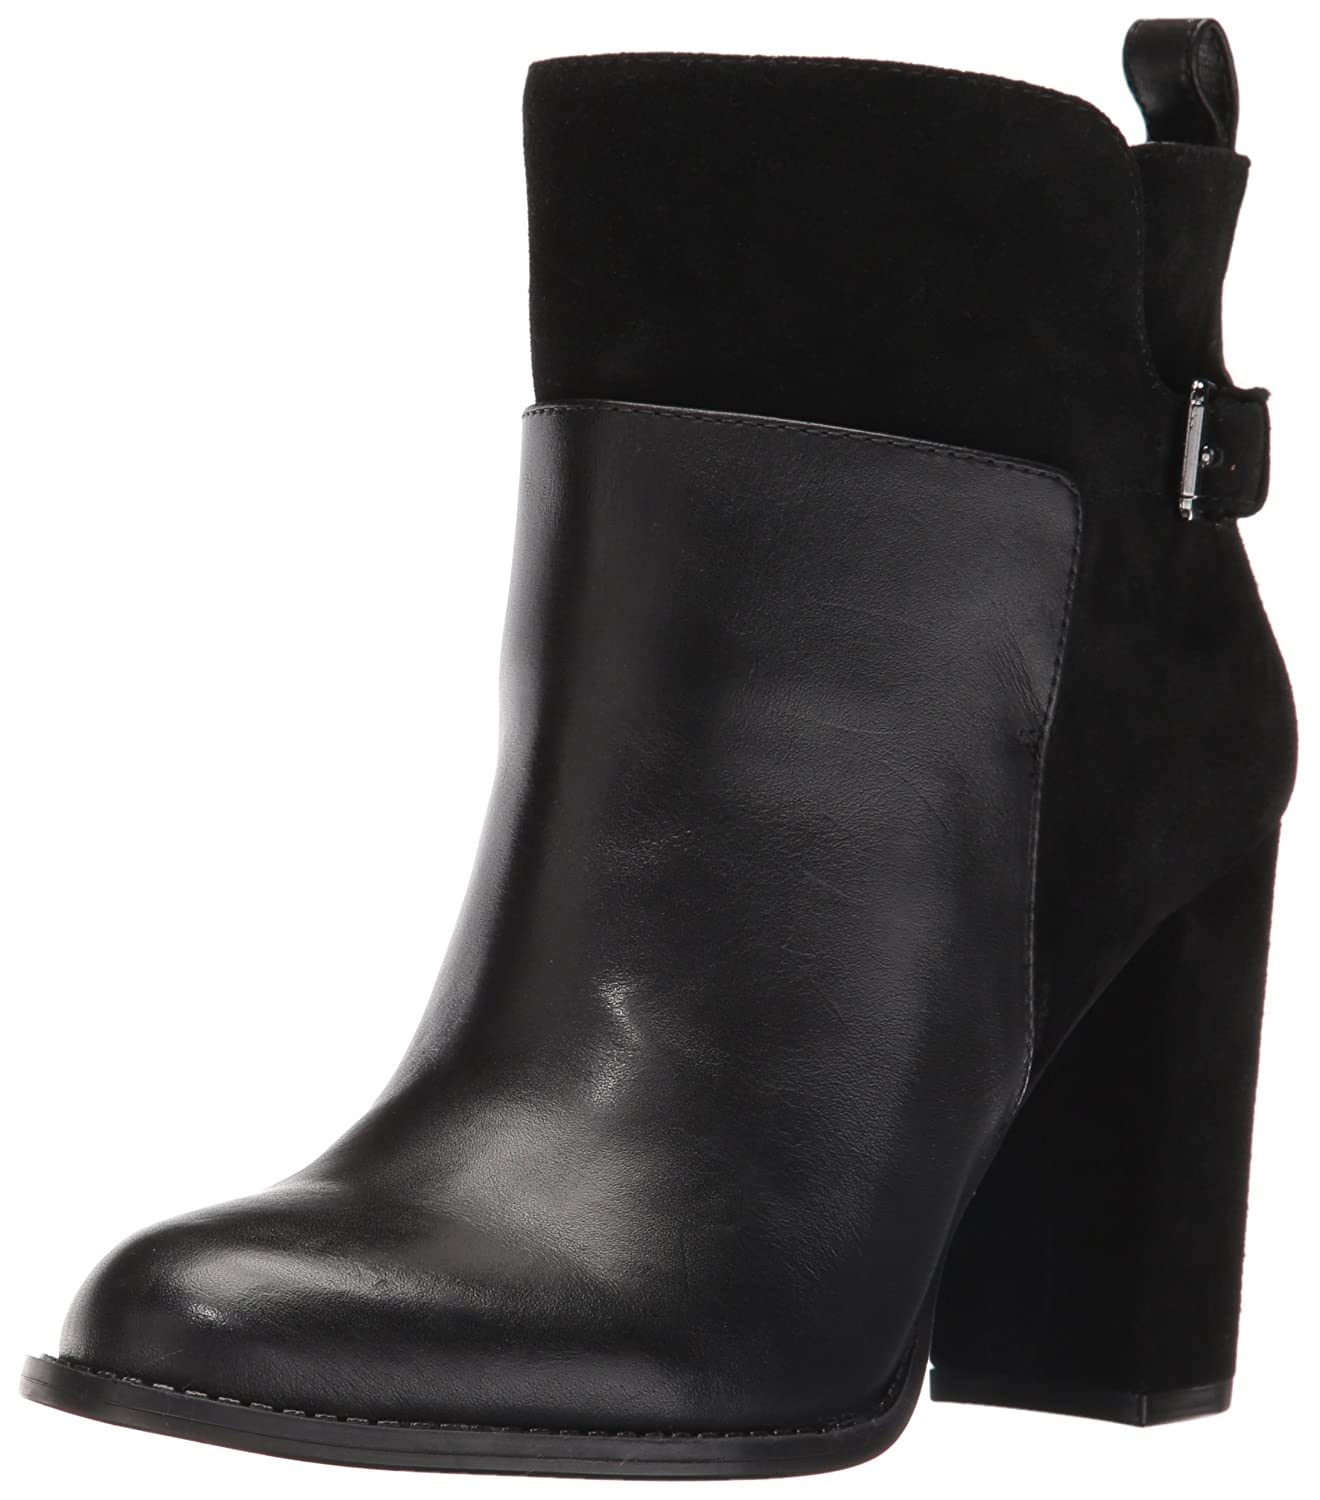 Nine West Women's Quinah Ankle Bootie B0059FUTAM 7.5 B(M) US|Black